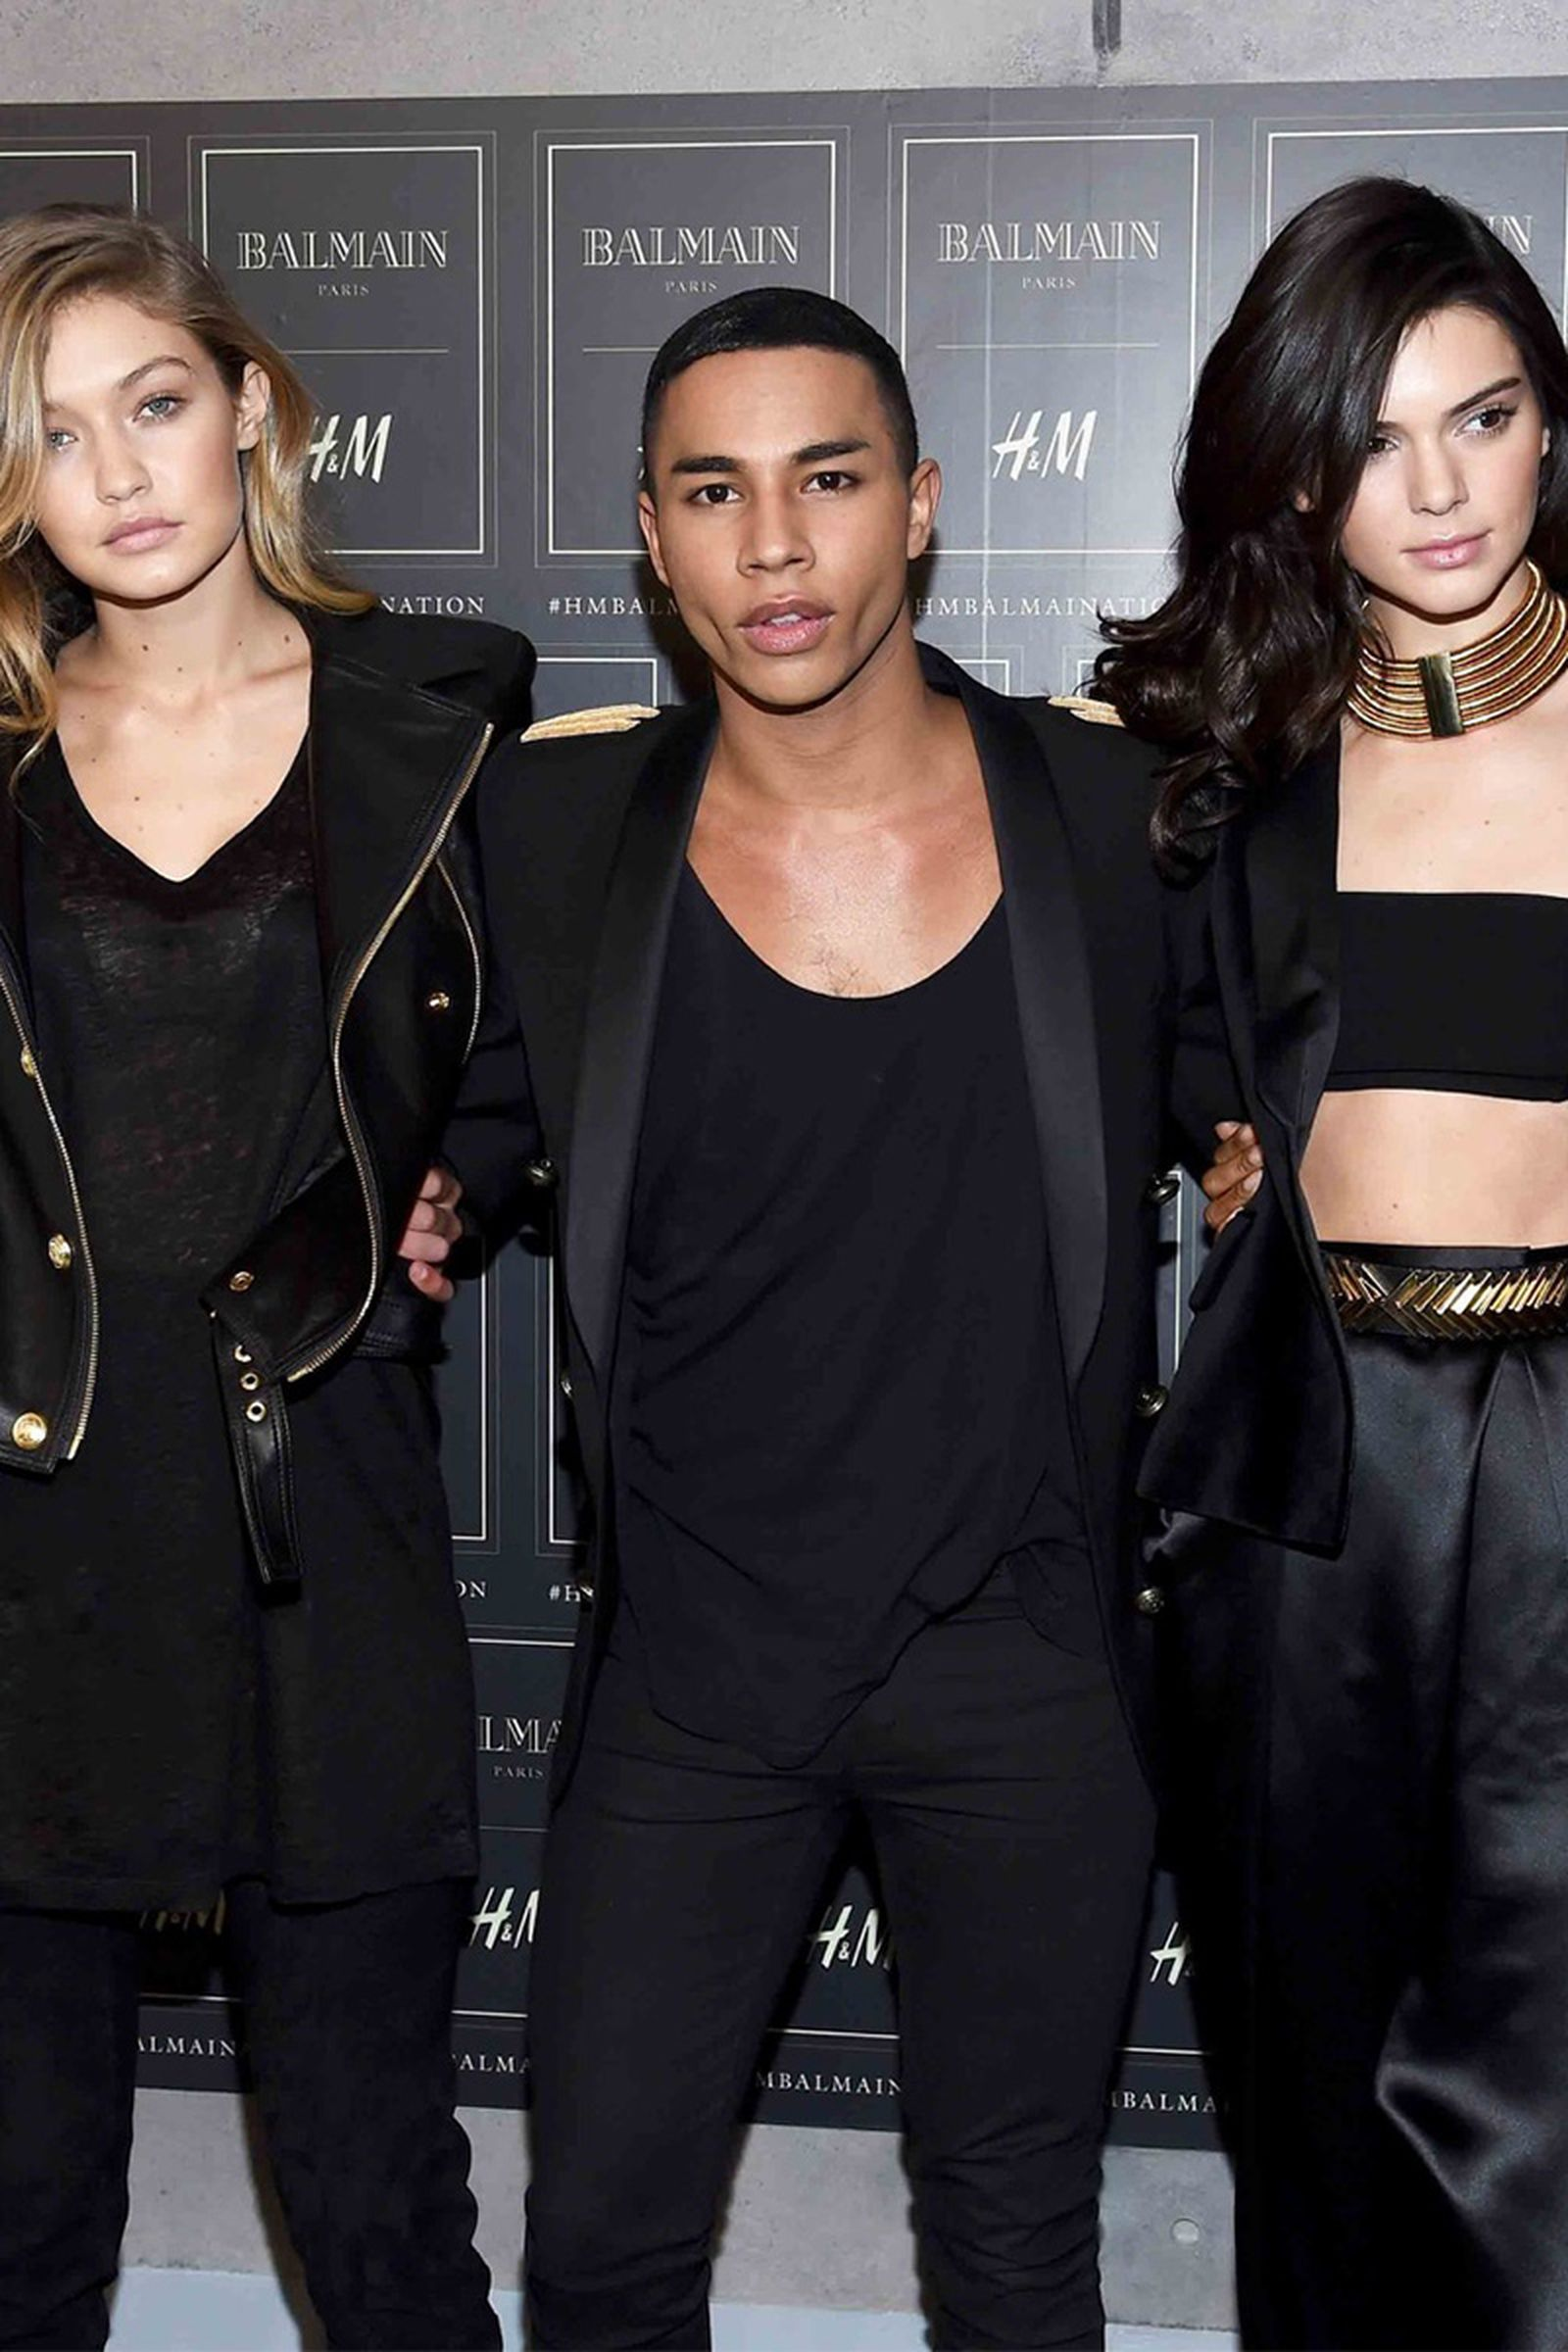 balmain-olivier-rousteing-exclusive-interview-06